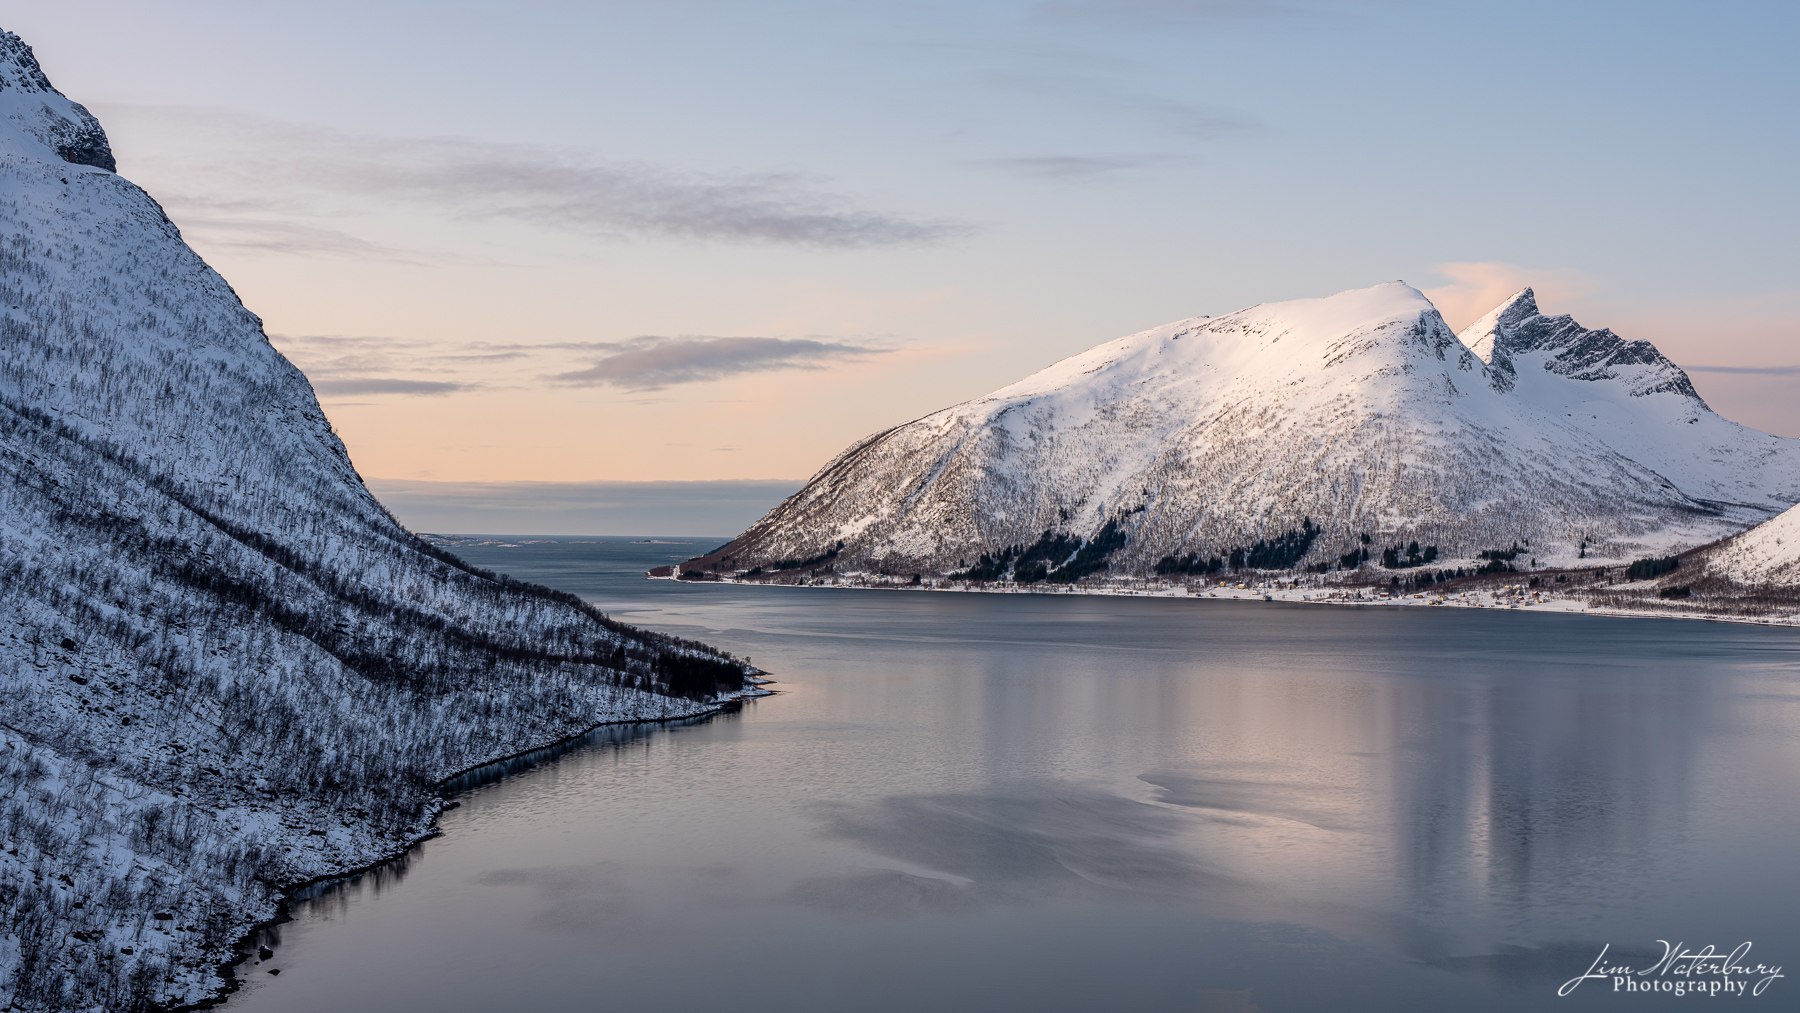 Soft evening light shines on the fjord at Bergsford, Senja, in the Lofoten Islands of Norway.